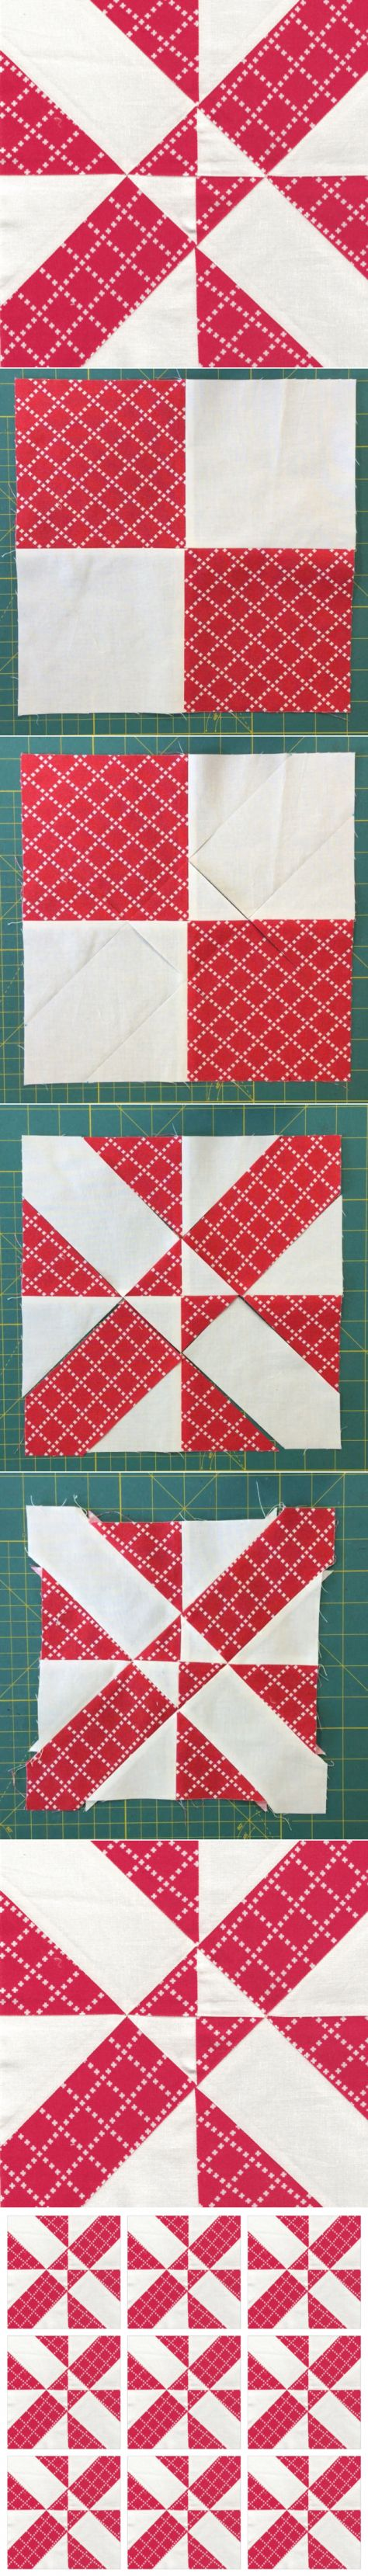 109 best Blocks images on Pinterest | Quilt block patterns, Quilt ...